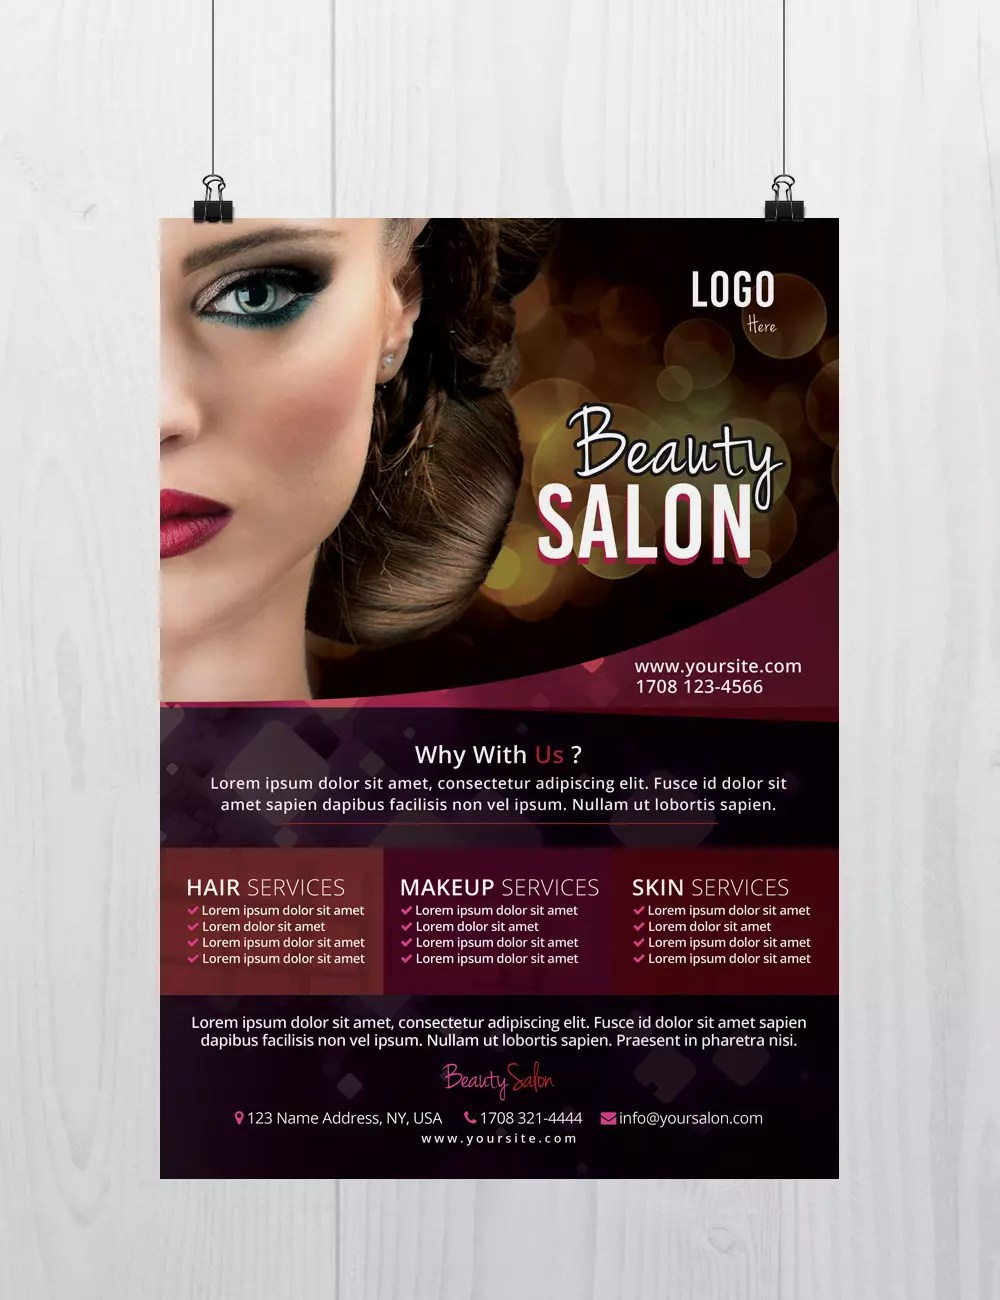 Stockpsd net     Freebie Templates   Beauty Salon   Free PSD Flyer     Download Beauty Salon PSD Flyer Template for Free  Designed by Stockpsd net    This Flyer is suitable for any Beauty Salon  Hair Salon  Make Up or other